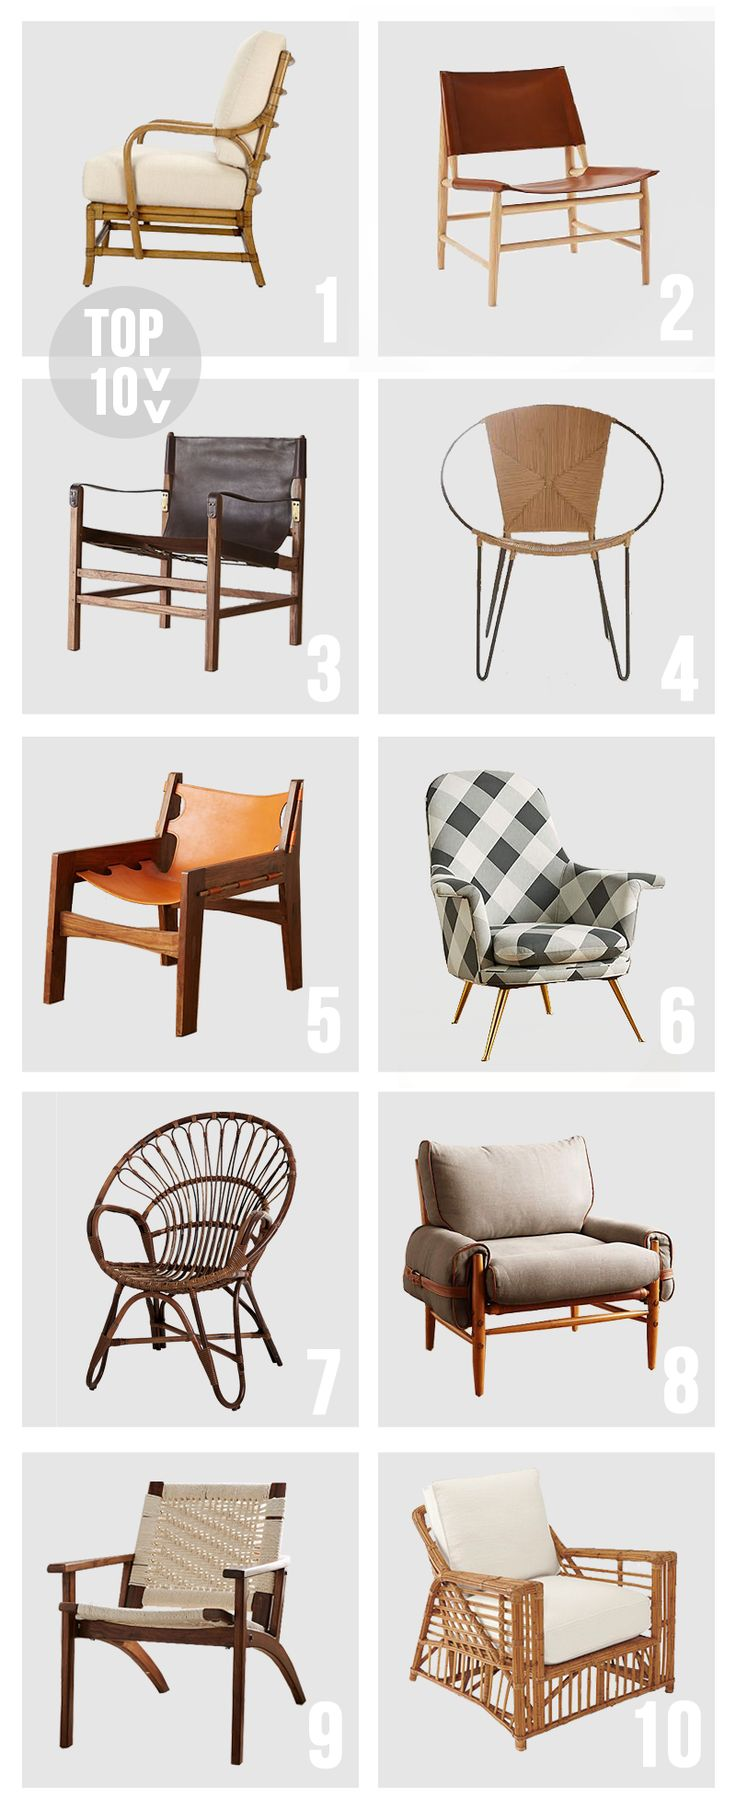 Top 10 Accent Chairs Amber Interiors Couches Living RoomsLiving Room